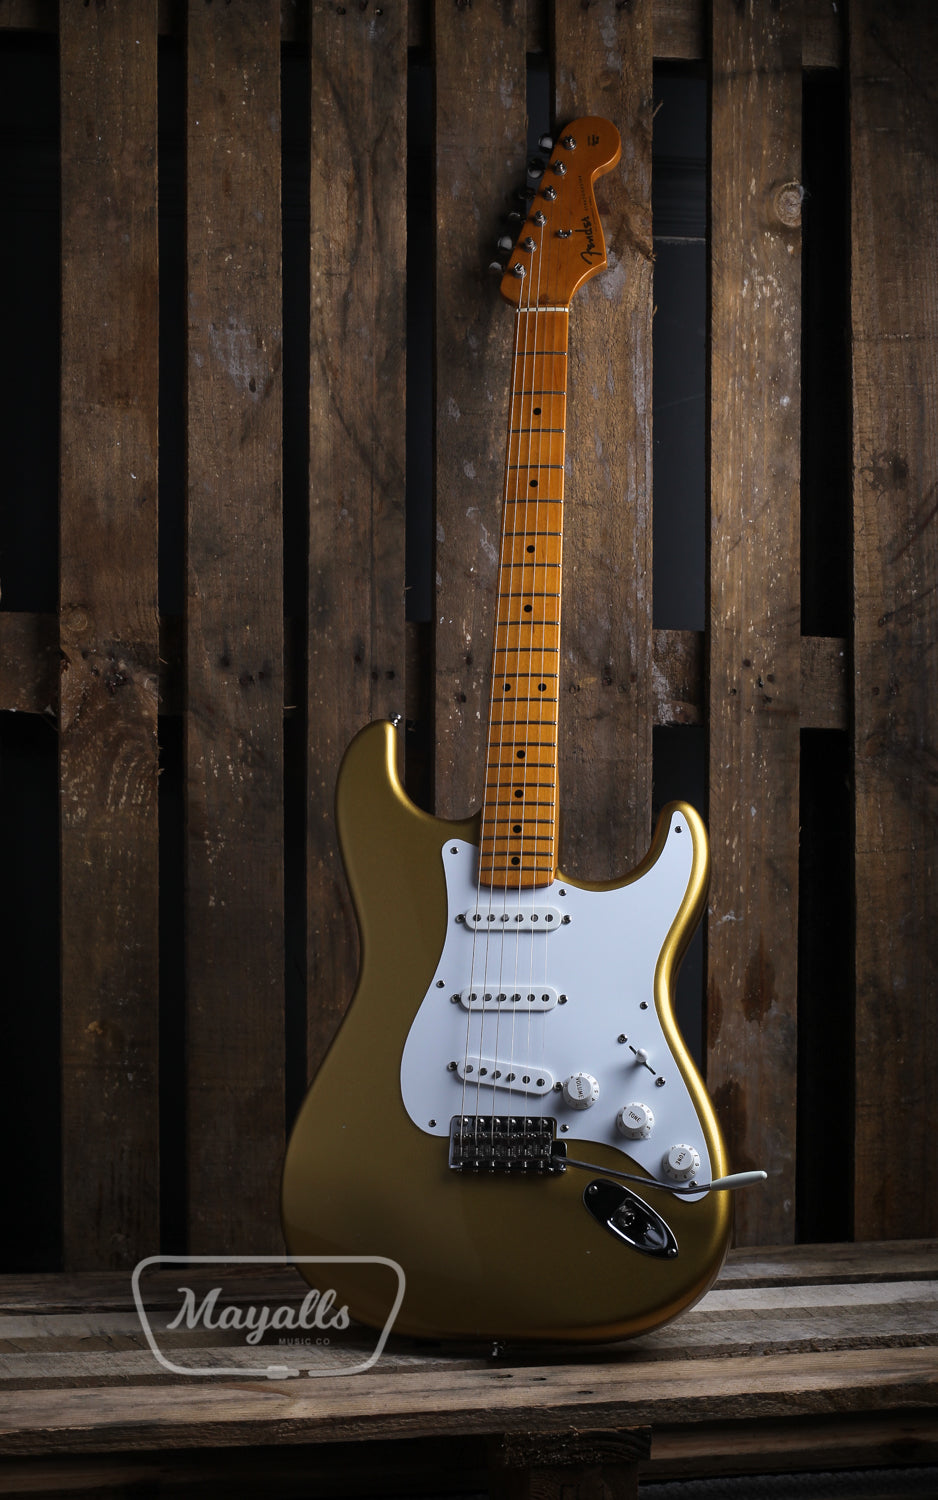 2000 Fender American Vintage '57 Stratocaster in Aztec Gold Electric Guitar - Pre-owned